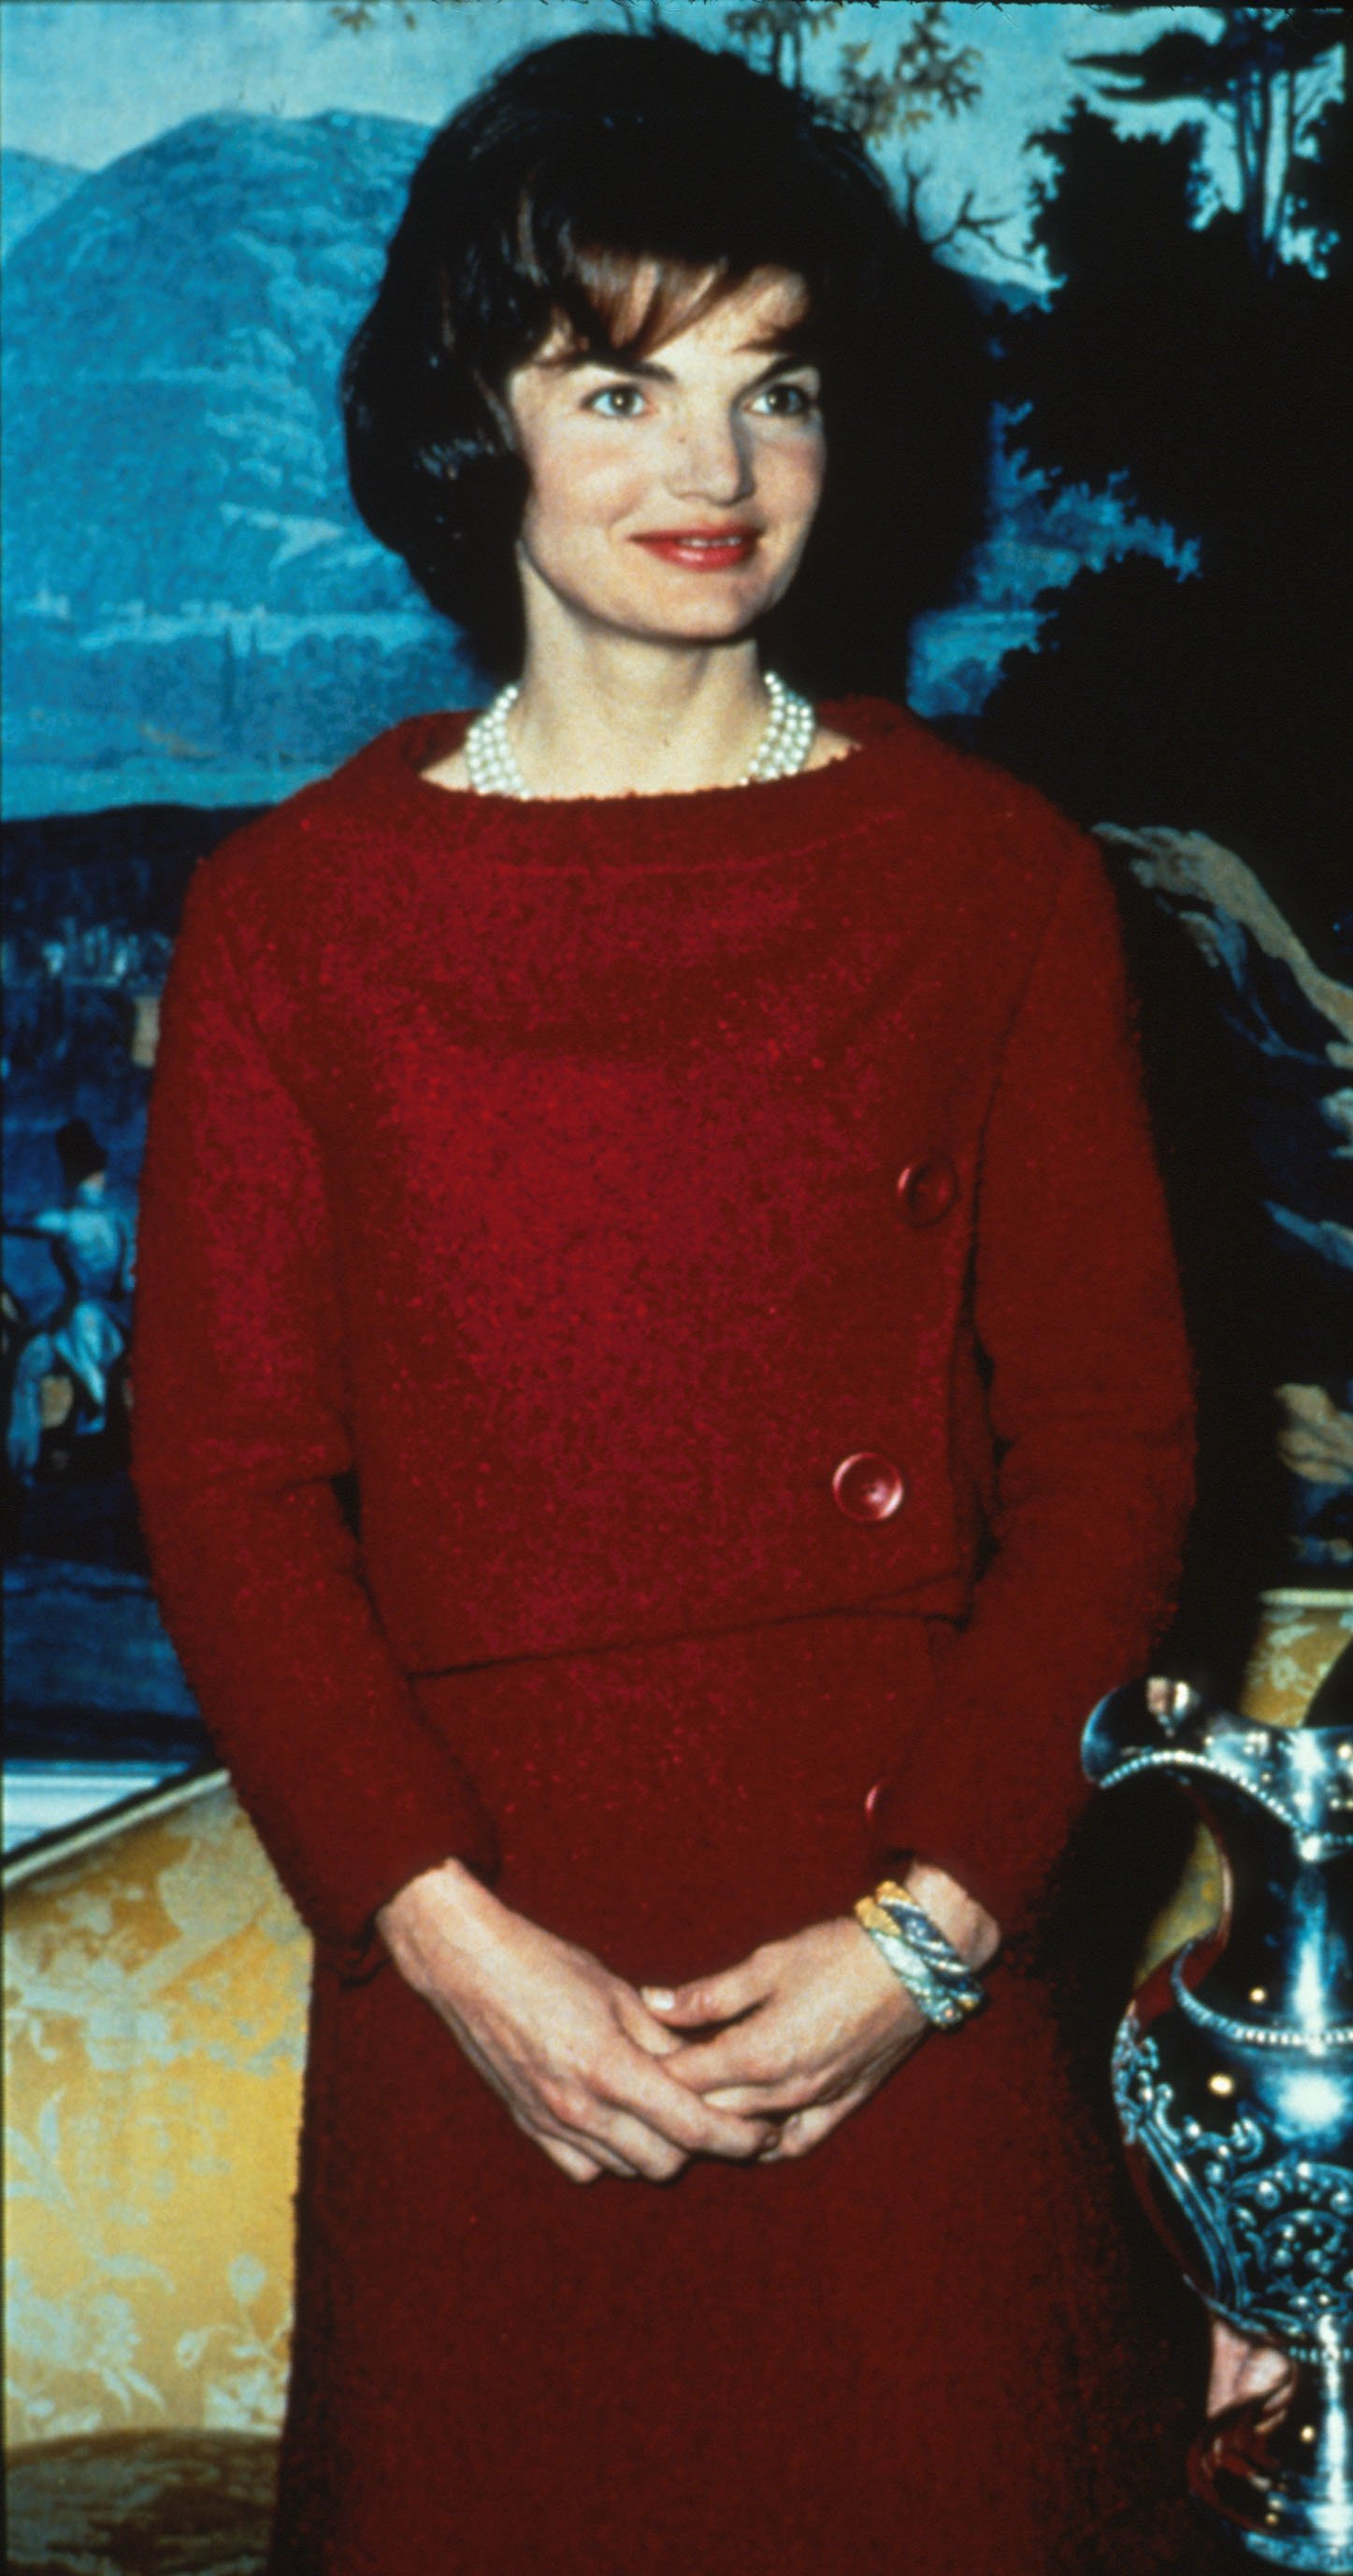 Jacqueline Kennedy poses during a Valentine's Day White House Tour in Washington, D.C. on February 14, 1962   Photo: Getty Images